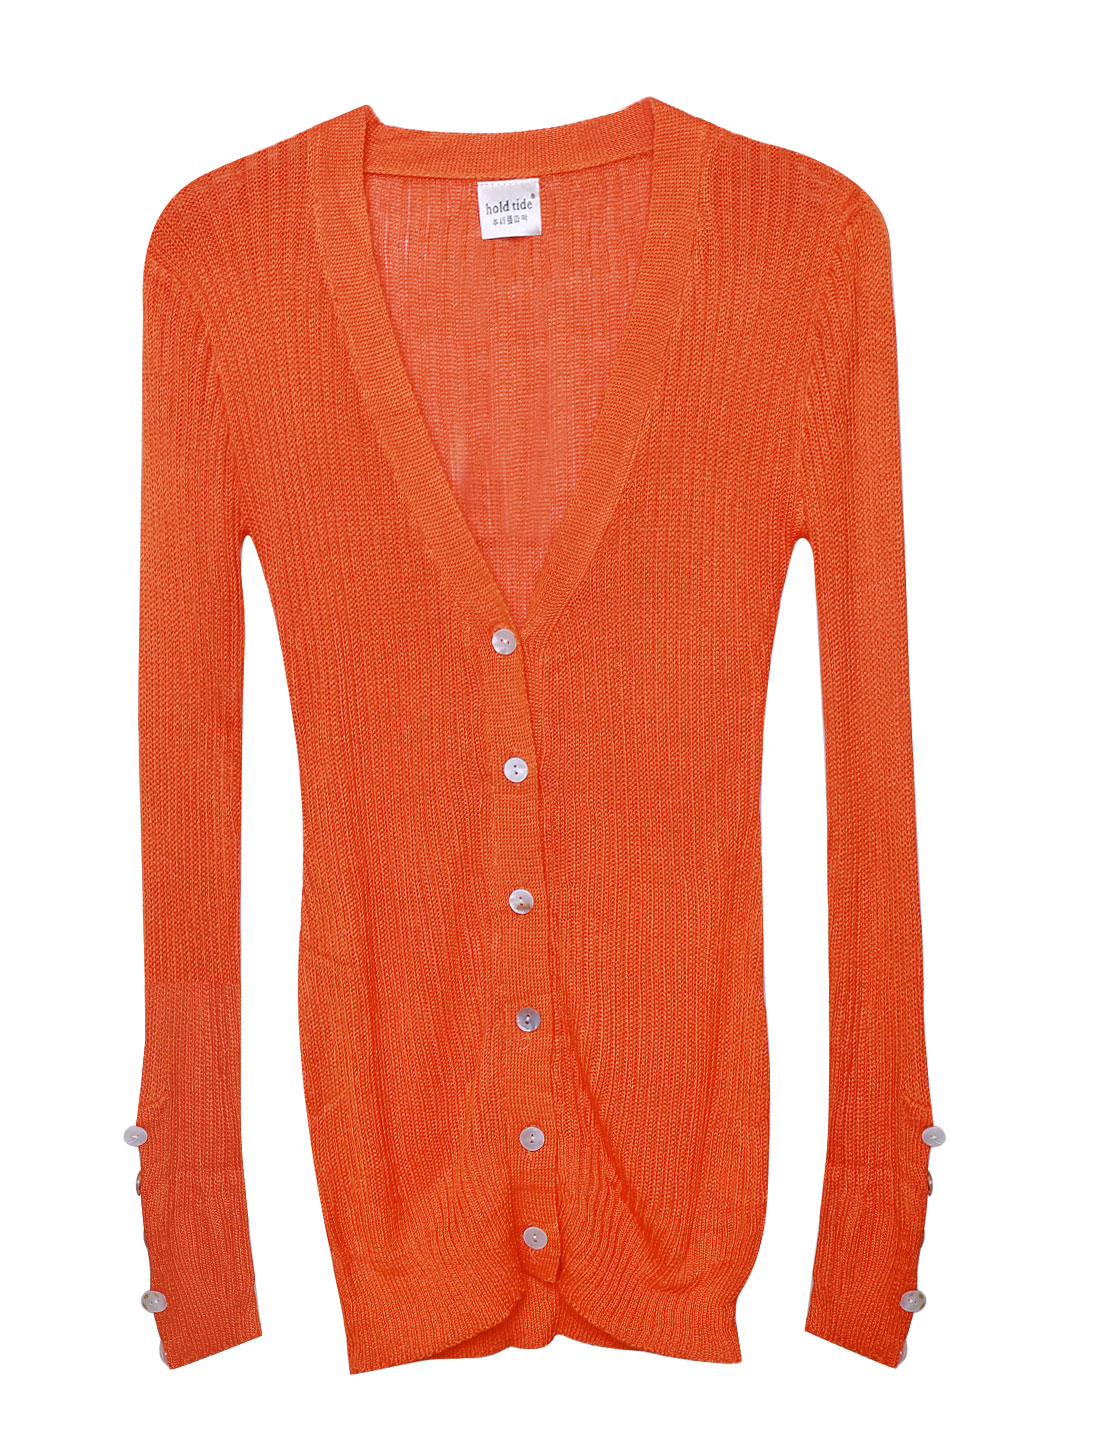 Ladies Orange Single Breasted Deep V Neck Leisure Cardigan M